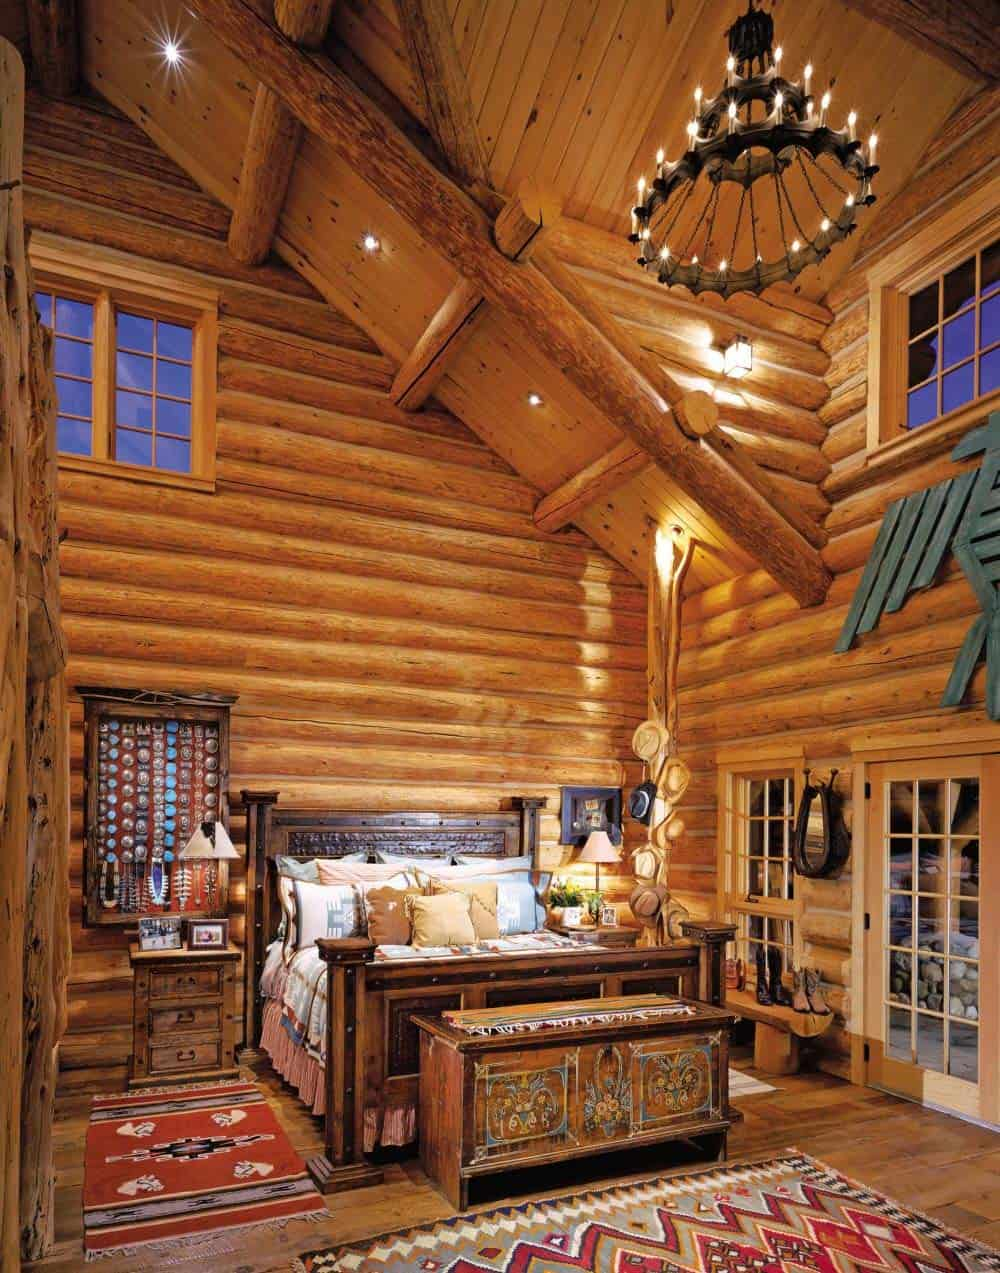 bedrooms ideas easy decorati bed frique style bedroom cabin studio decorating pleasing on coma decor log cabins